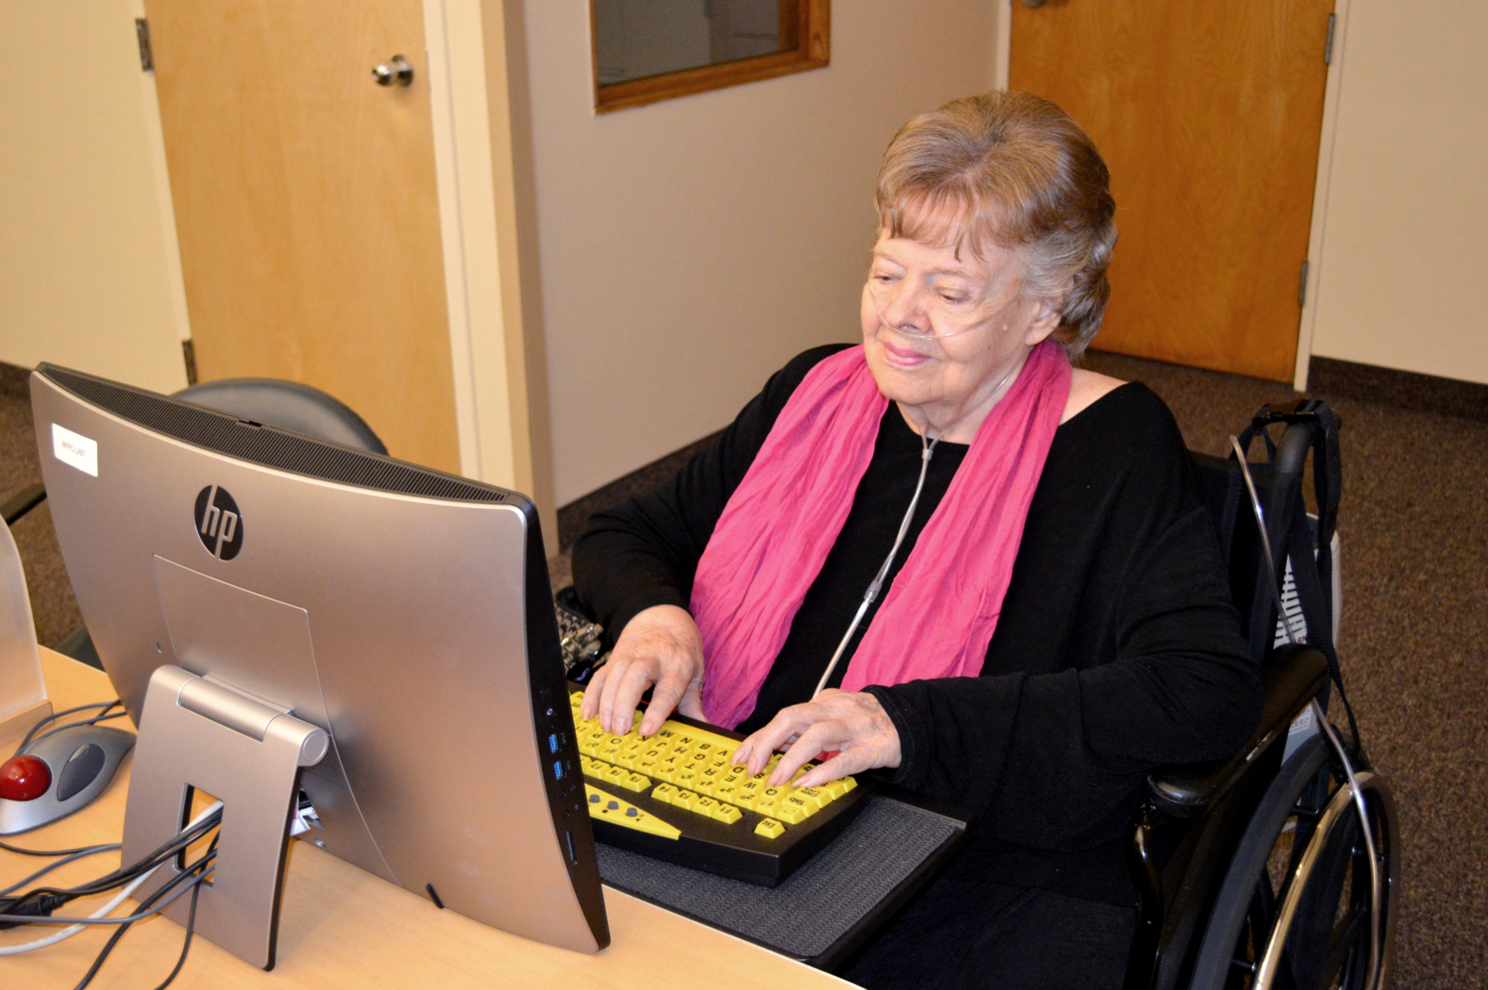 Lifelong learning at Menorah Park assisted living active aging senior nursing residence